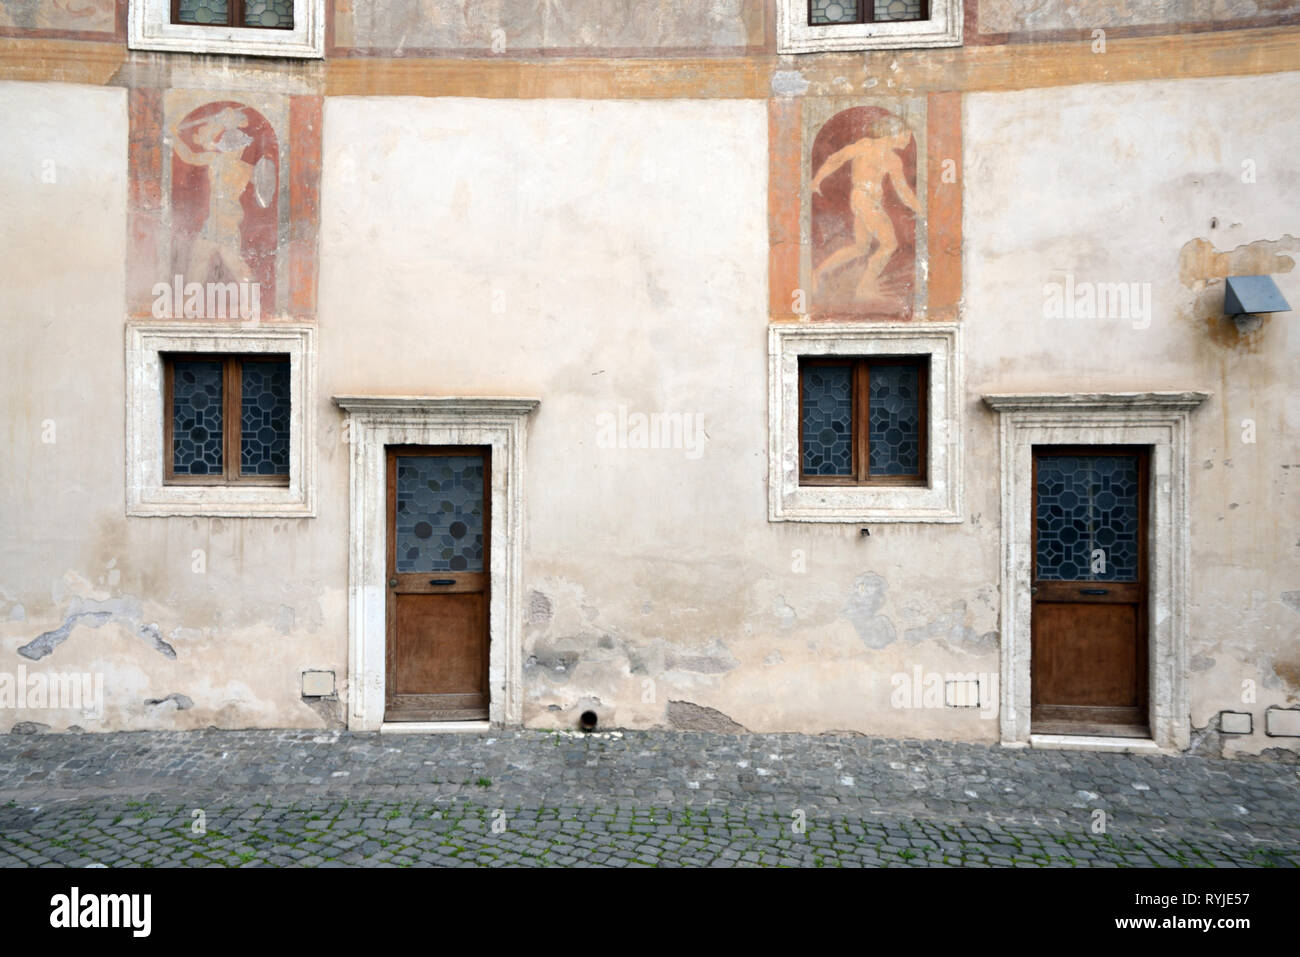 Small Terraced House Facade and Front Door in Interior Courtyard of Hadrian's Mausoleum (123-139AD) or Castel Sant'Angelo Rome Italy Stock Photo